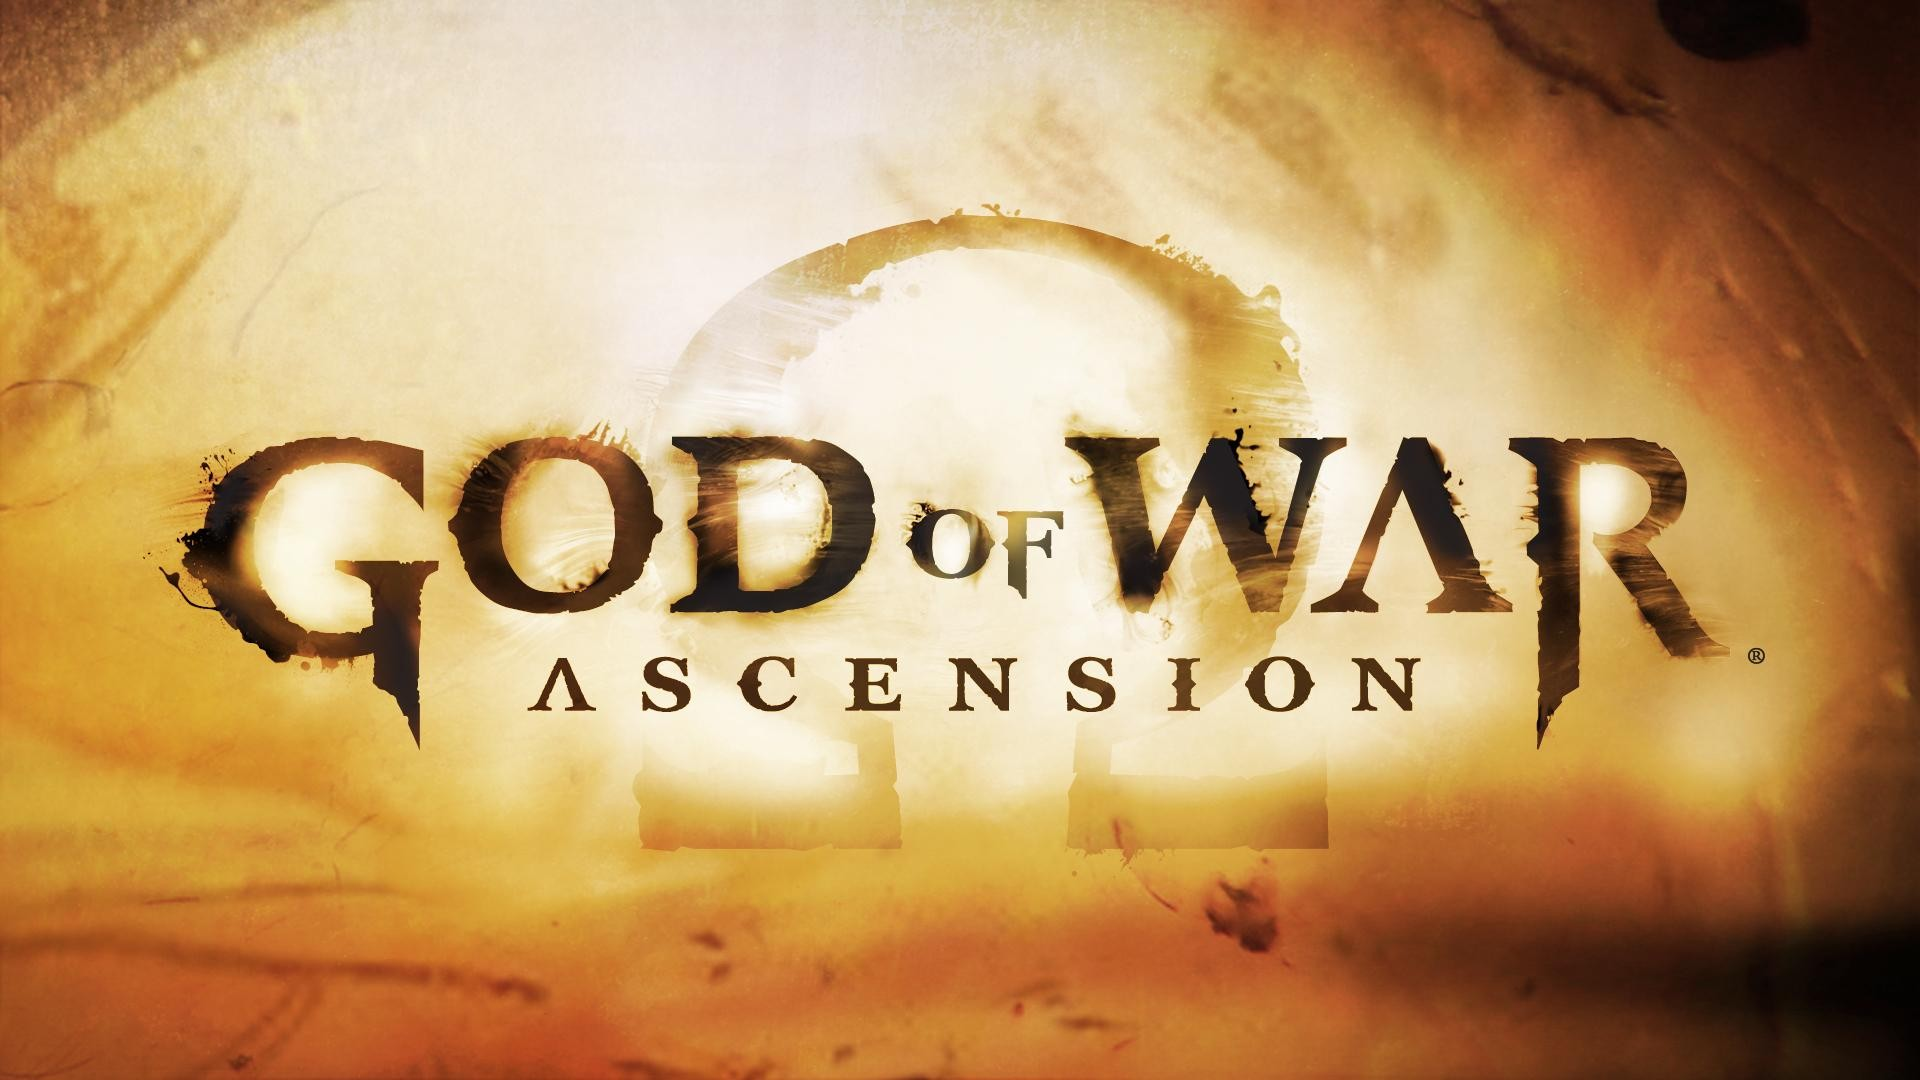 ascension,divinity,war,title,god,god of war,rise,thor,gage,state of war,games,ascension day,of,deed of conveyance,statute title,deity,supreme being